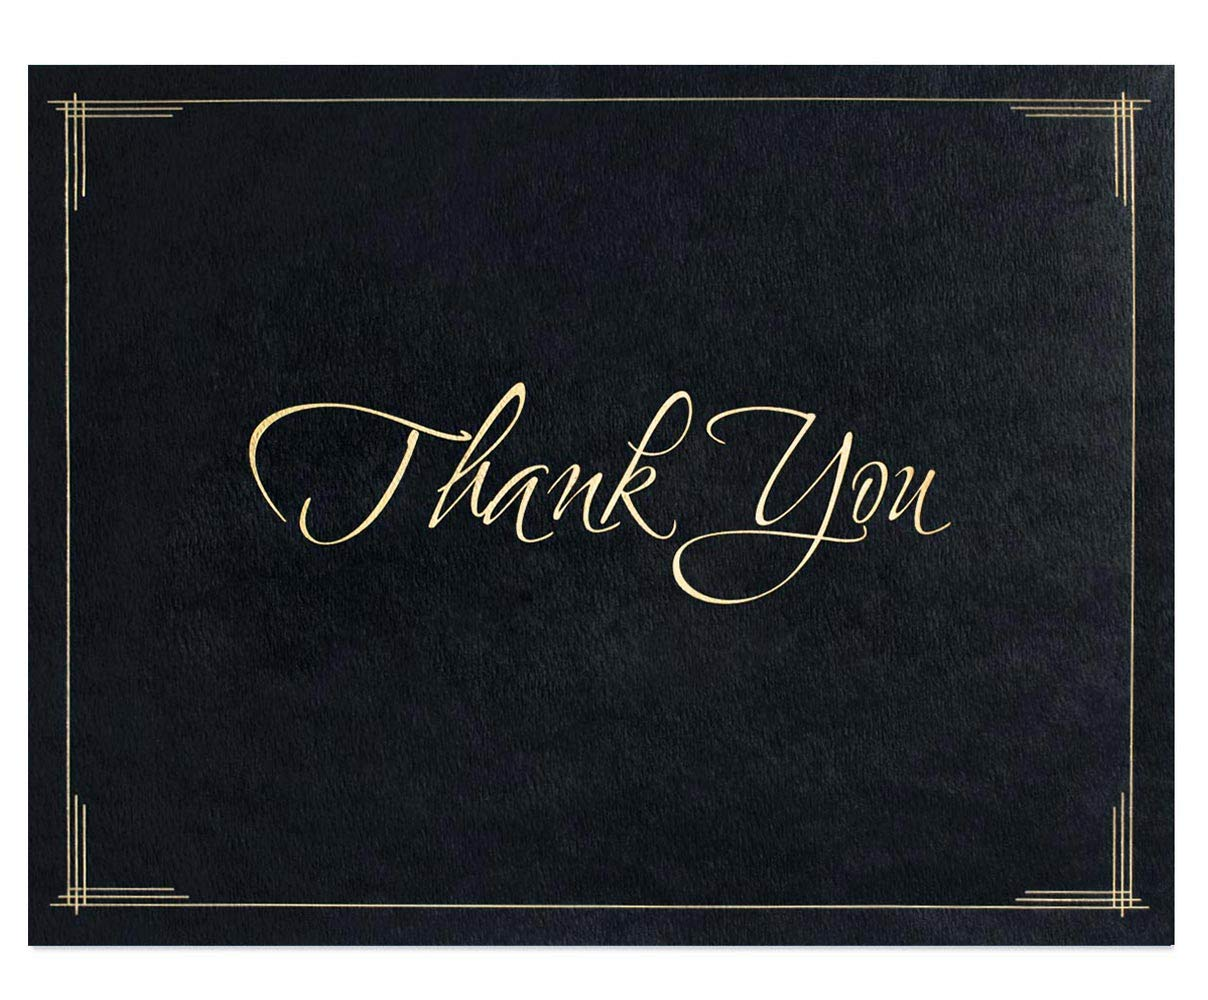 Thank You Certificate Jackets, 9 Inches x 12 Inches Folded, Black with Gold Foil, 50 Count by PaperDirect